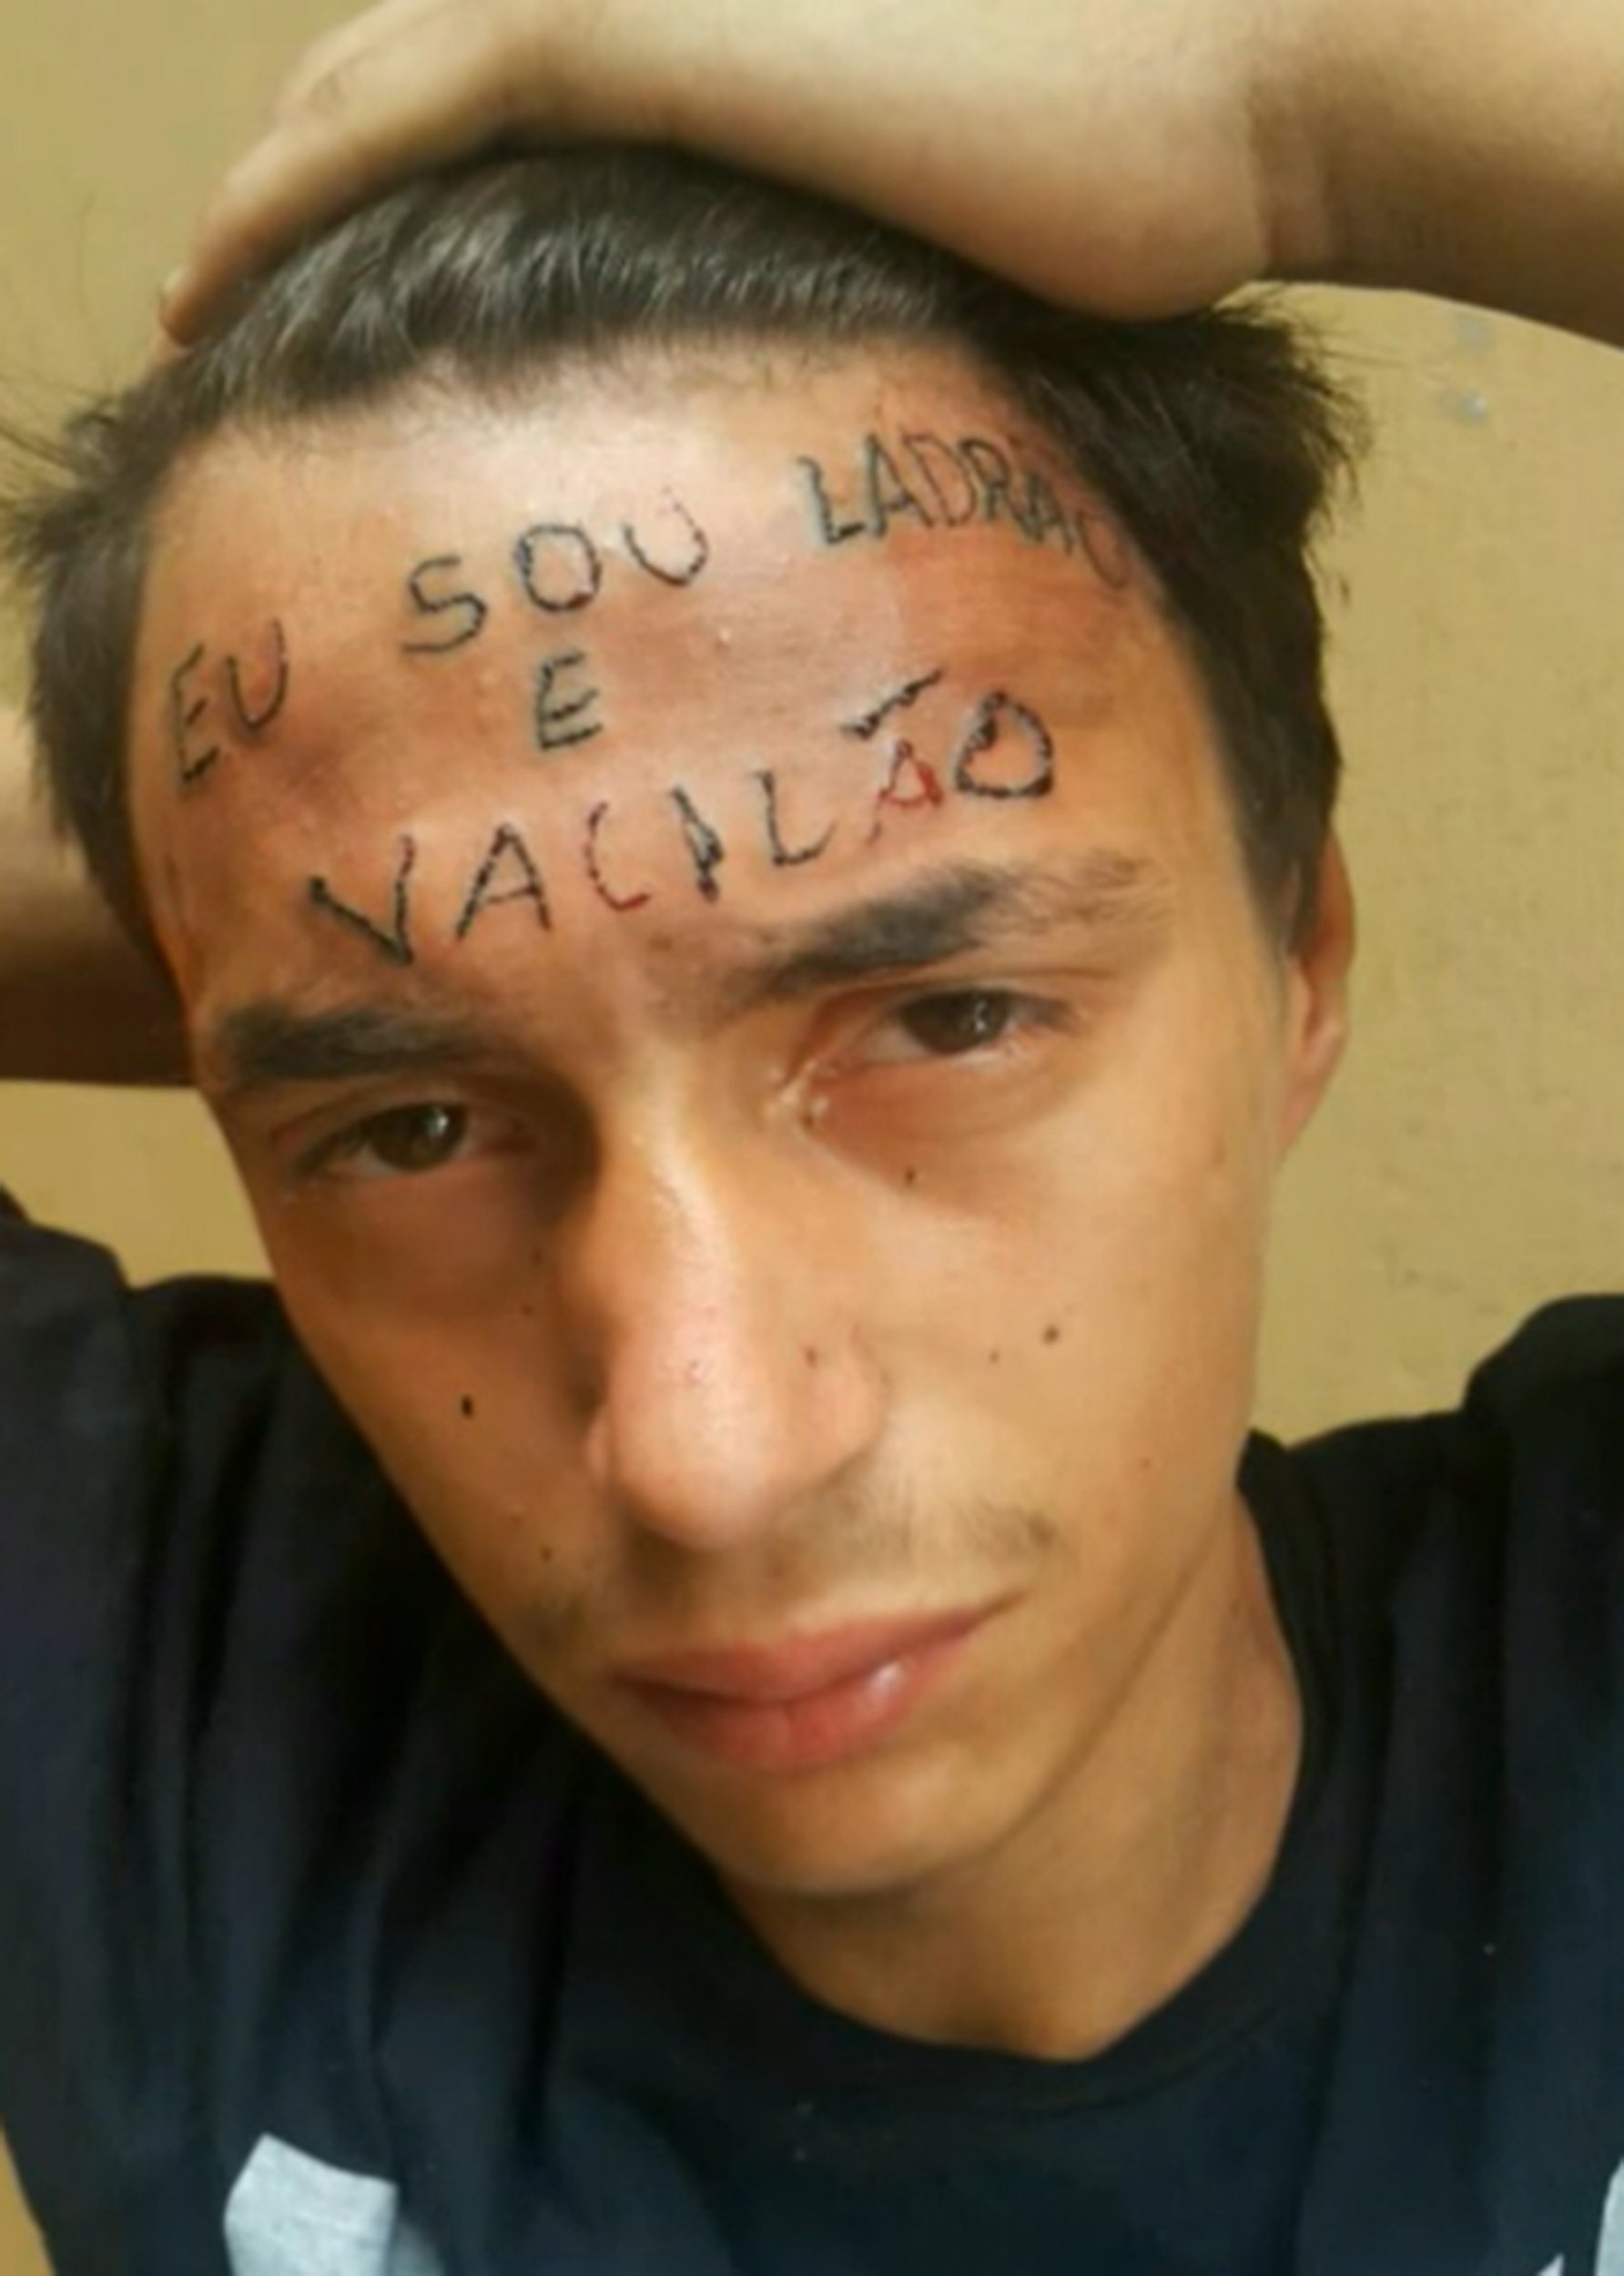 "Pic shows: The thief with his brand new tattoo. A teenager who was forced to have ""I am a thief and an idiot"" inked across his forehead has been arrested for stealing one year after the tattoo was etched into his skin. 18-year-old Ruan Rocha da Silva was allegedly caught stealing five cans of deodorant from a supermarket and arrested by Military Police in the Maripora area of Sao Paulo, the Brazilian city in the state of the same name. Silva made headlines last year after two men were arrested for torturing him by tattooing his forehead as a punishment for allegedly trying to steal a bike. Tattoo artist Maycon Wesley Carvalho, 27, and neighbour Ronildo Moreira de Aruajo, 29, were both found guilty by a judge, with Carvalho given a sentence of three years and four months in prison and Aruajo three years and five months. The two were caught by police after filming themselves inking the tattoo and sending the images to friends. In the video, Carvalho can be heard saying: ""It is going to hurt, it is going to hurt."" In the most recent case, Silva was caught by a shop assistant allegedly stealing the deodorant and taken to a police station. Silva was arrested for stealing but he was released after paying the 1,000 BRL (213 GBP) bail and is awaiting trial. A cousin of the alleged thief told reporters that Silva???s shoplifting was down to a relapse into drug use. Silva??? lawyers had told the judge in the tattoo case that Silva had been addicted to crack cocaine and alcohol and was receiving treatment. Local media reported he went to a rehab centre in Sao Paulo earlier this year. (ends)"